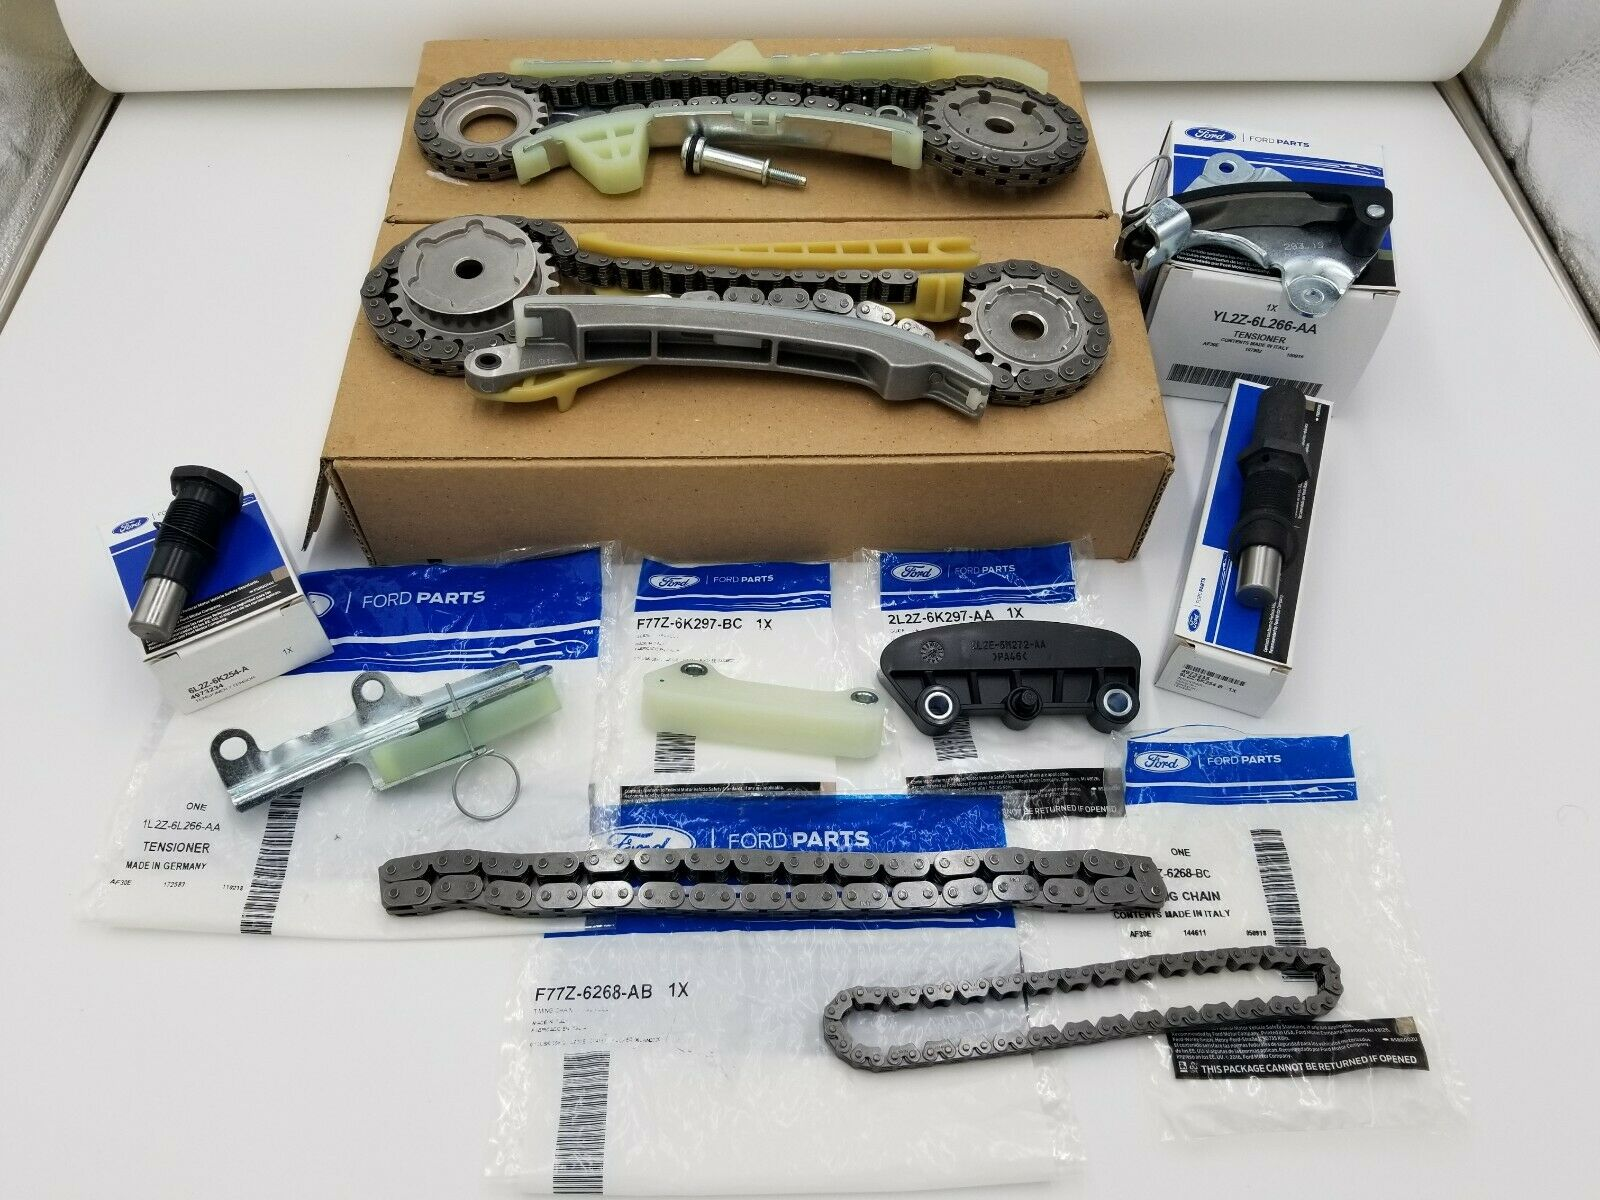 Brand New OEM Timing Chain 4.0L V6 12V SOHC EFI, 10 Pieces Engine Repair Kit (OG-60-4.0L-10-1)